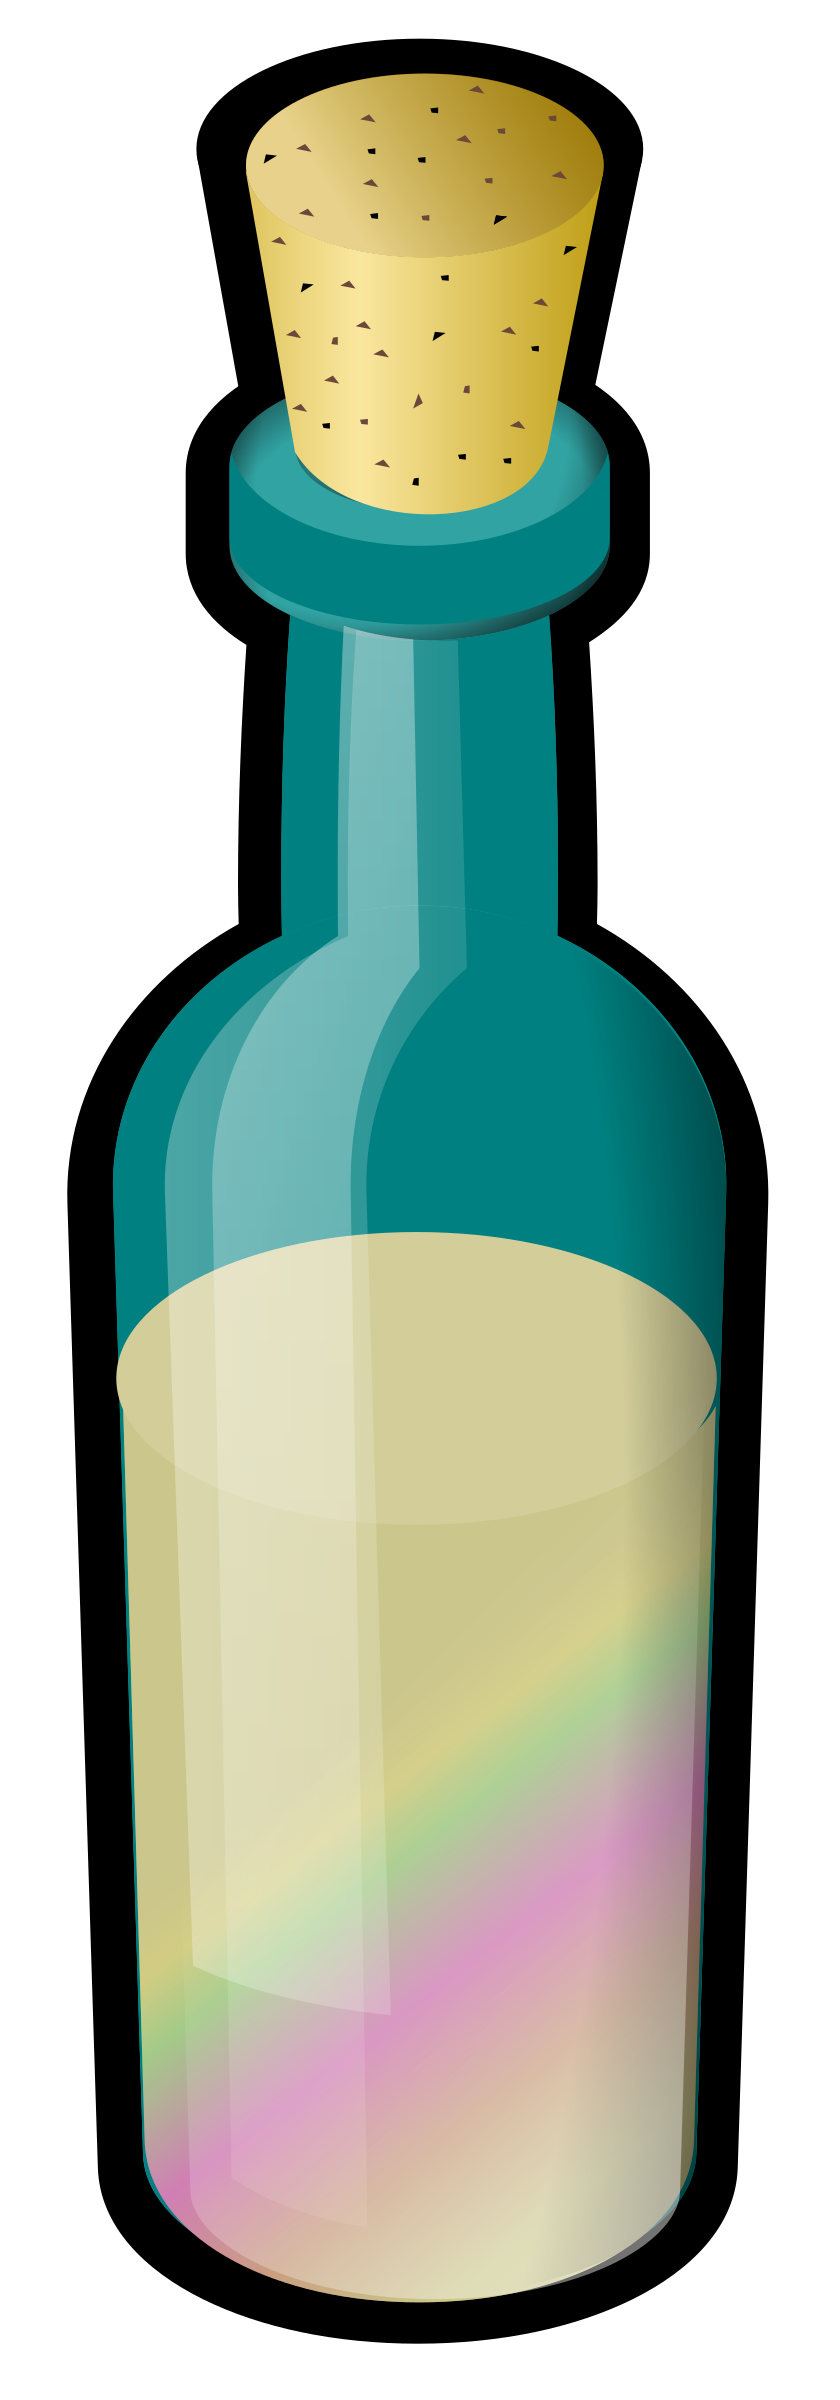 Bottle of Colored Sand, with Cork by eady